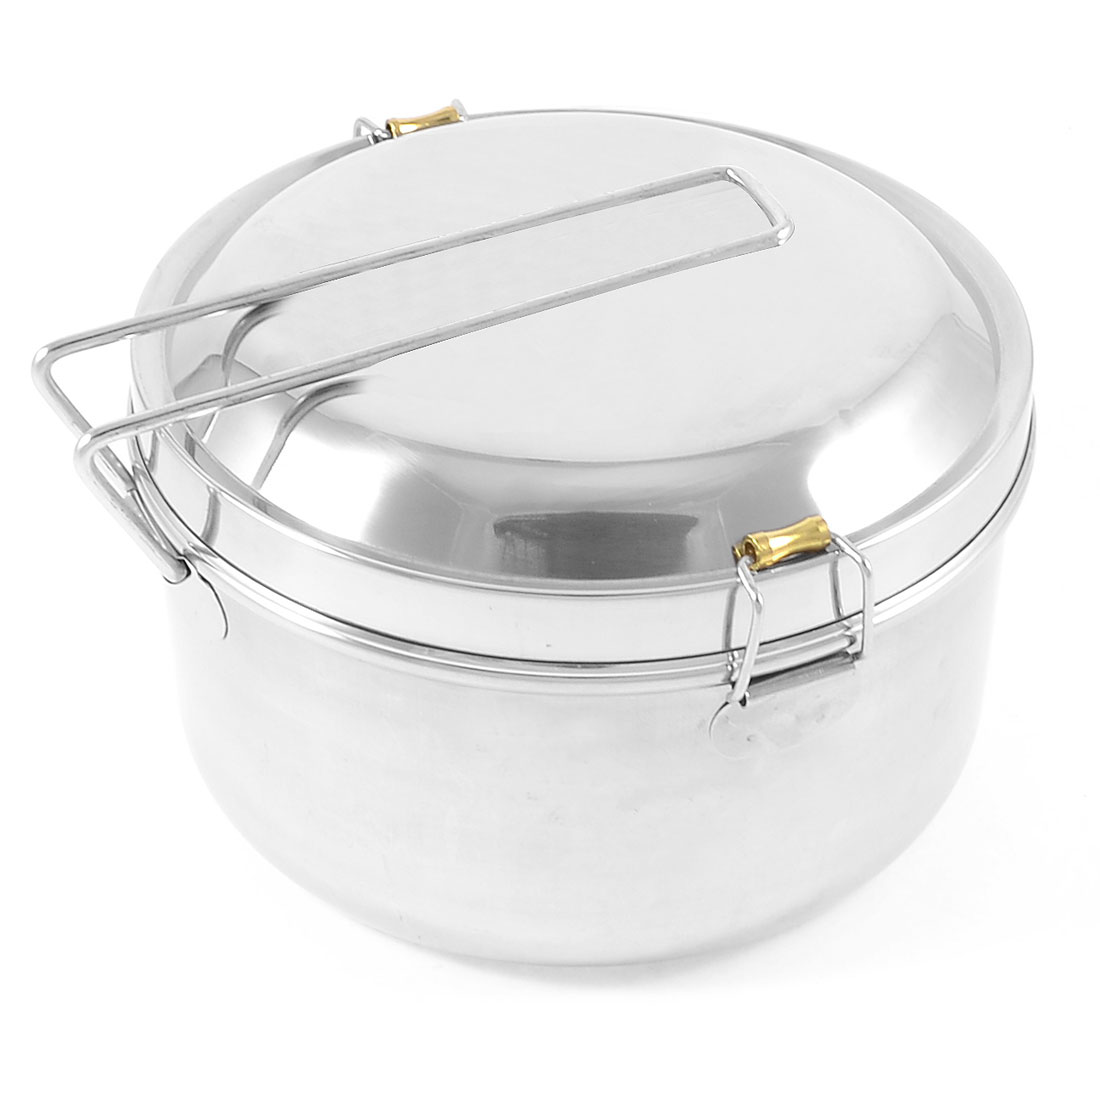 Kitchenware Detachable Handle 16cm Diameter Stainless Steel Lunch Box